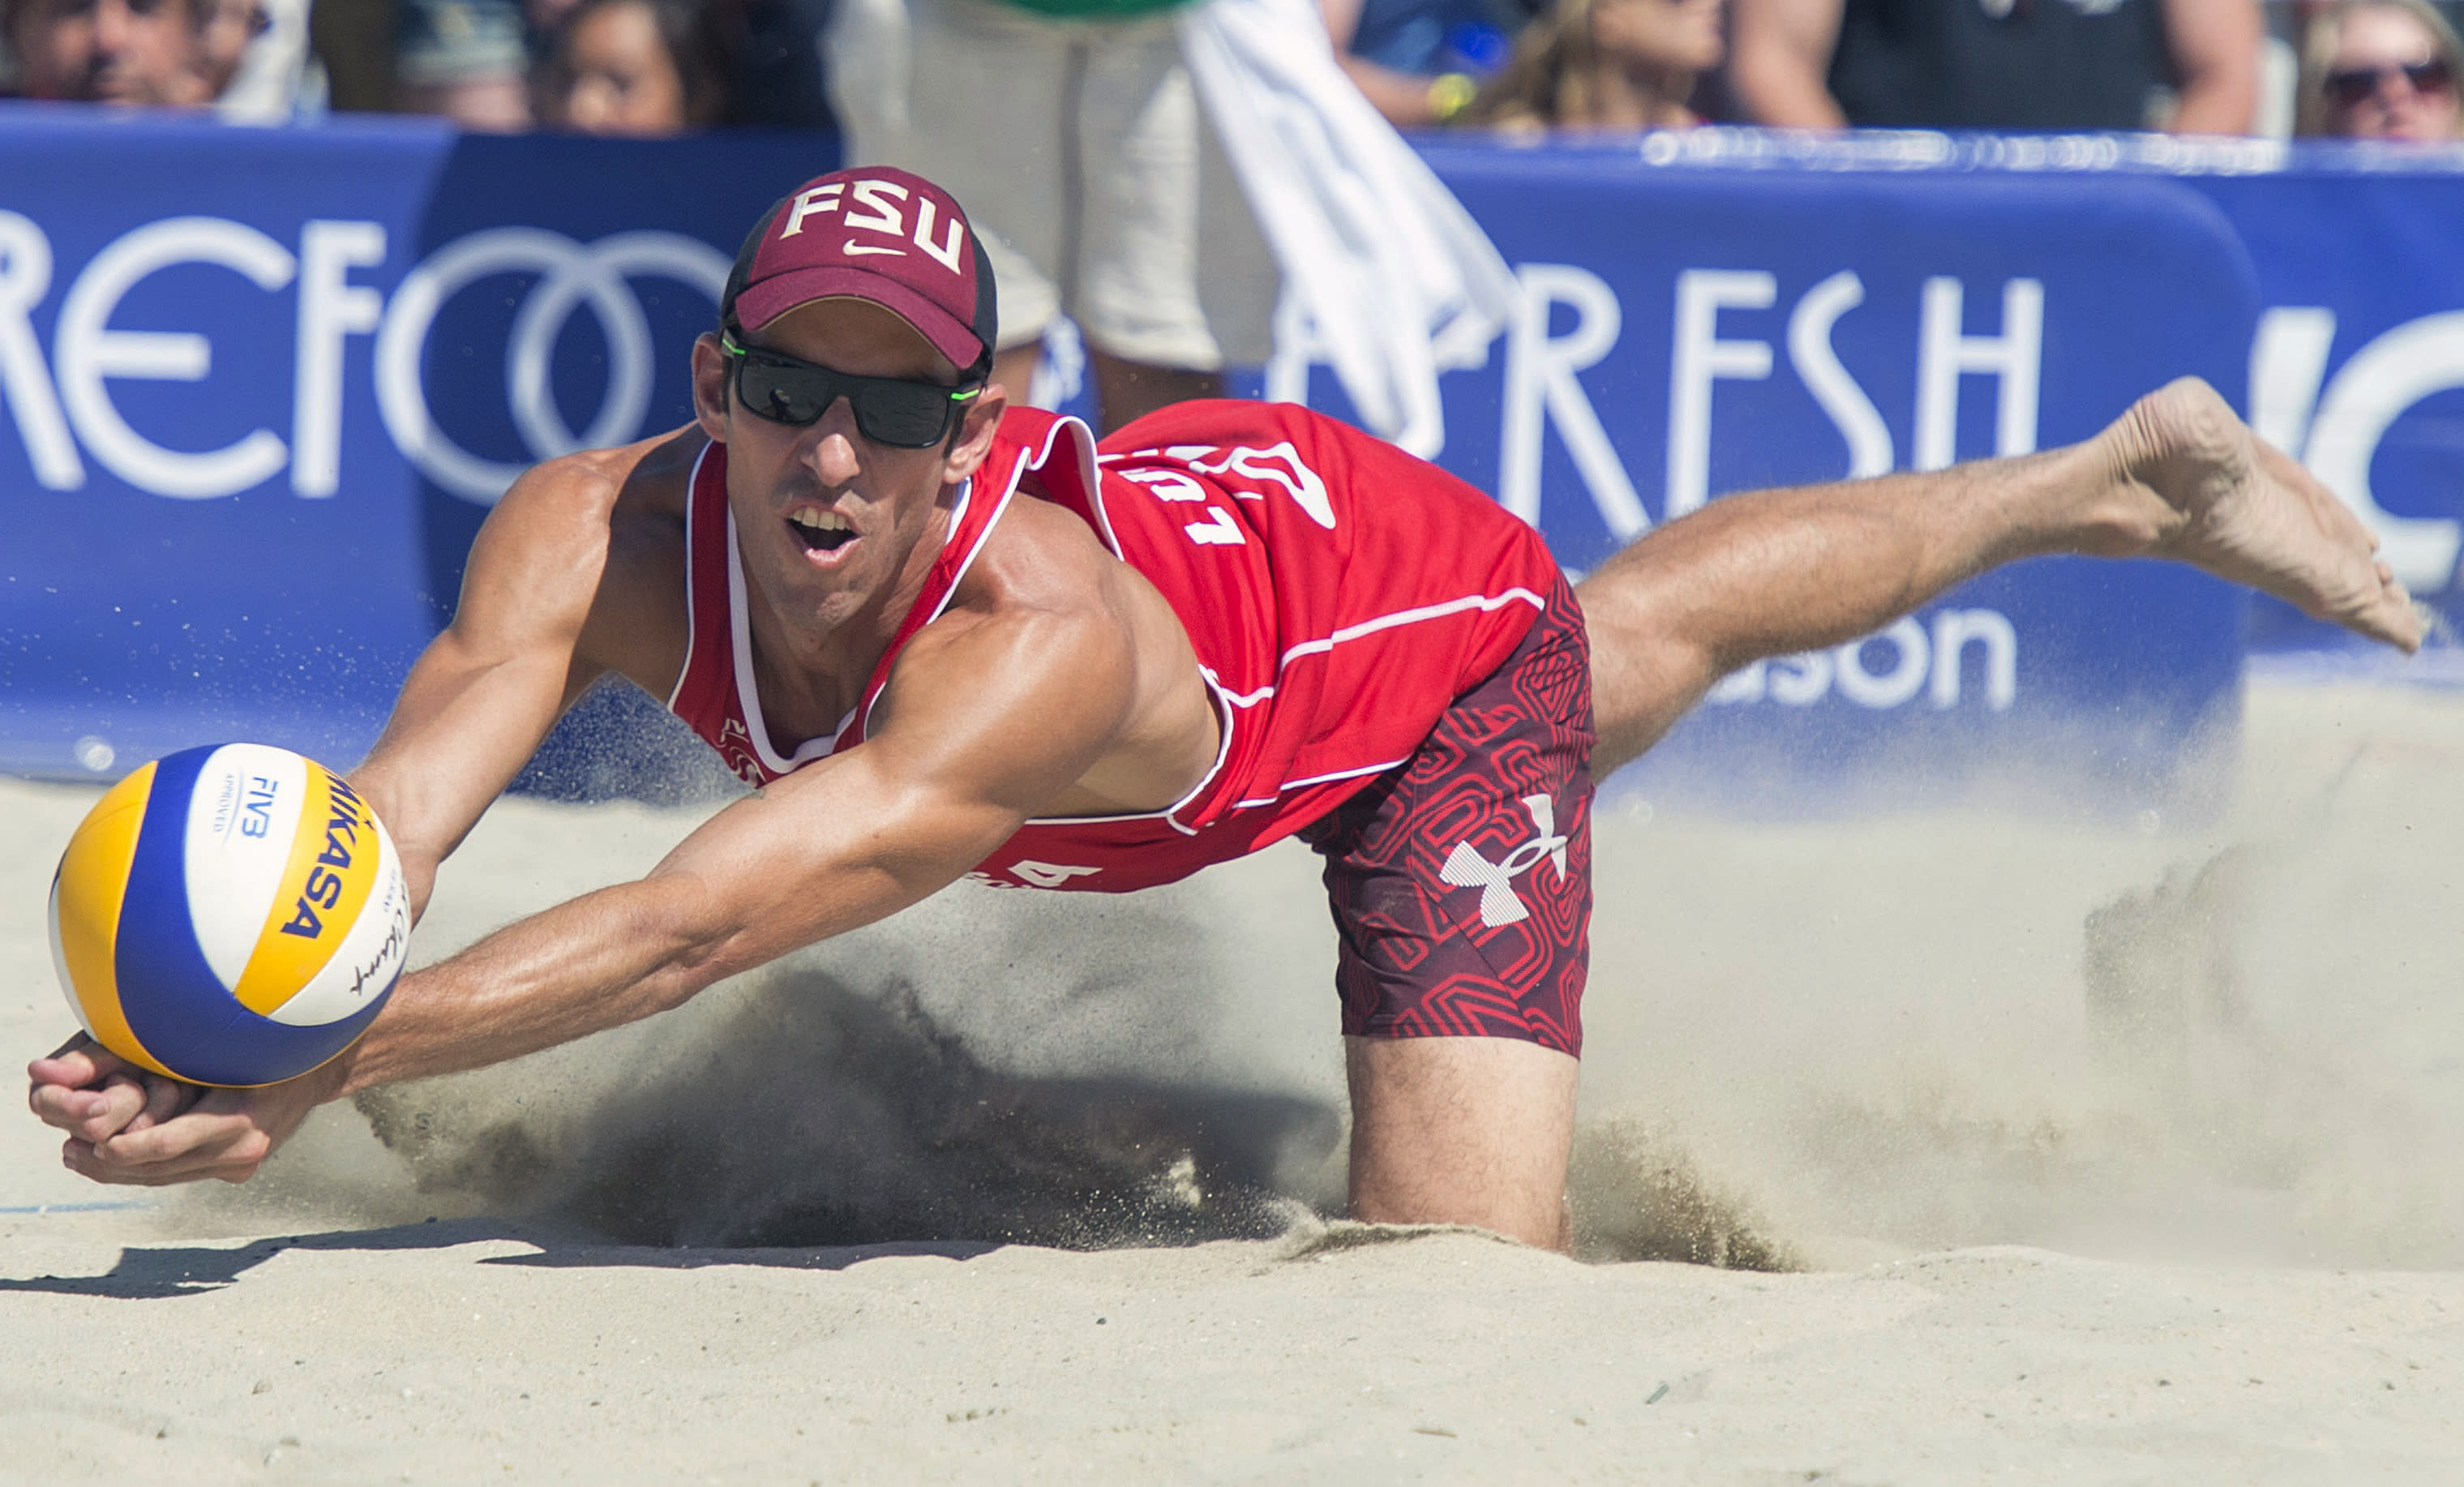 FILE - In this Aug. 23, 2015, filer photo, United States' Nick Lucena digs out a ball during the final match at the FIVB World Series of Beach Volleyball event in Long Beach, Calif. Organizers of the AVP beach volleyball tour gathered at their Orange County war room to try to salvage as much as possible of their season as the cancellations mounted in the sports world. Ideas tossed out included everything from a fan-free setup on a local beach to playing in front of a green screen in a TV studio. But with the suspension of the NBA season, it became obvious that scrapping any events before June was the only choice. (Michael Goulding/The Orange County Register via AP, File)